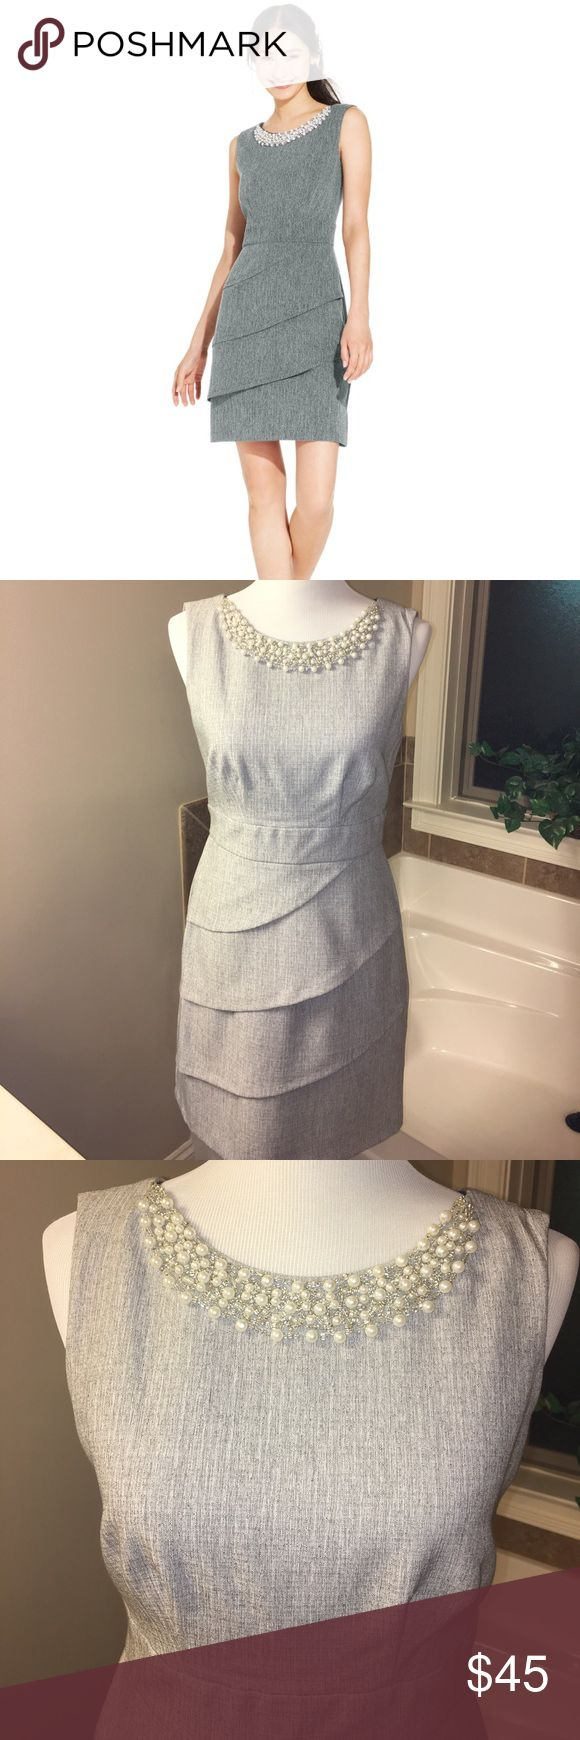 NWOT Connected Petite lt grey dress w pearl neck Pearlescent beading adds a classic vibe to this cute cocktail dress. Tiered asymmetrical skirt and sleek silhouette.  Zip back.  Never worn. Connected Petite Dresses